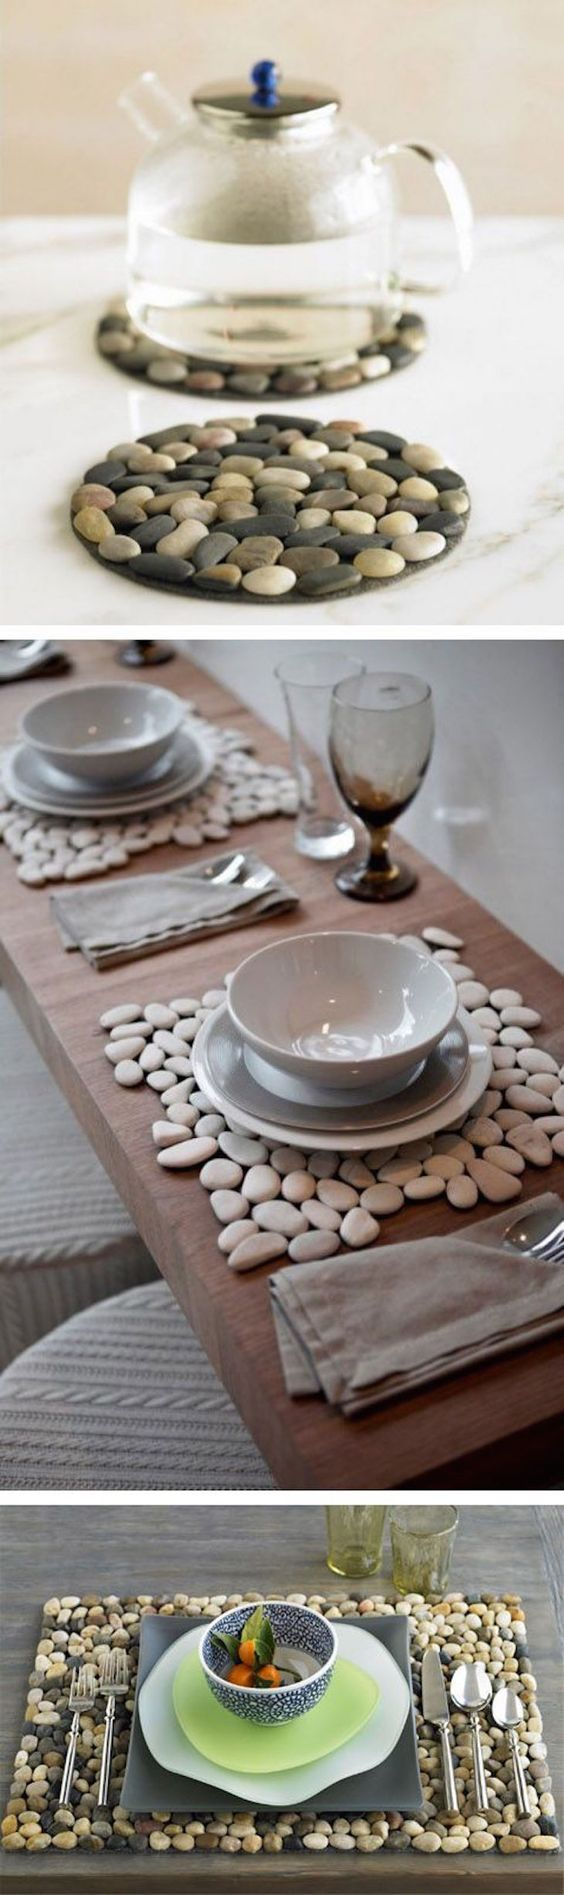 best diy crafts and simple projects images on pinterest home